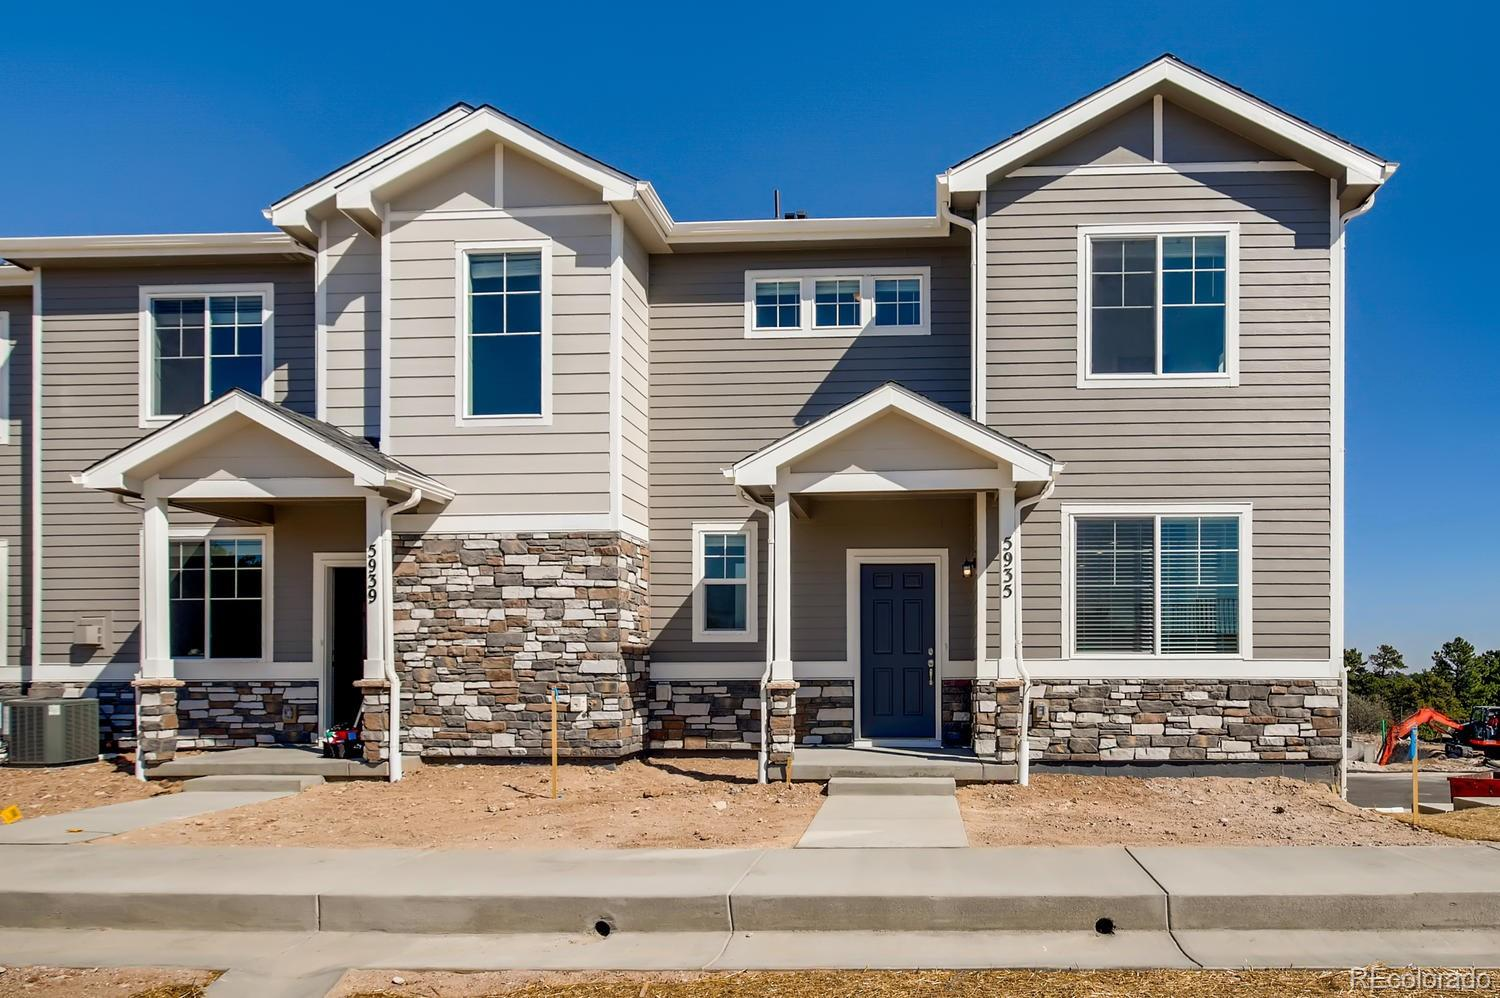 """Luxury Townhome in the heart of Castlerock with an April/May 2021 completion! The beautiful Adderbrooke is a 2 bed, 2.5 bath, with oversized attached 2 car garage. Luxury kitchen includes gas cooktop, hood, and built in microwave/oven wall unit.  Open floorplan with spacious living area, island kitchen with upgraded cabinets, dining space, and is perfect for entertaining.  Both bedrooms have en-suite bathrooms providing privacy and making it a great roommate layout.  Upstairs laundry conveniently located near both bedrooms, and loft area makes for a cozy office space.  Includes energy-efficient furnace, A/C, tankless water heater, and 2"""" white blinds. Right outside your back door, you can enjoy miles of walking trails through the beautiful scenery of the nature filled canyons. Don't miss out on living at The Enclave, just moments away from major highways, shopping, dining, award winning Douglas County Schools, and multiple outdoor activities! **Pictures are from sample home**"""